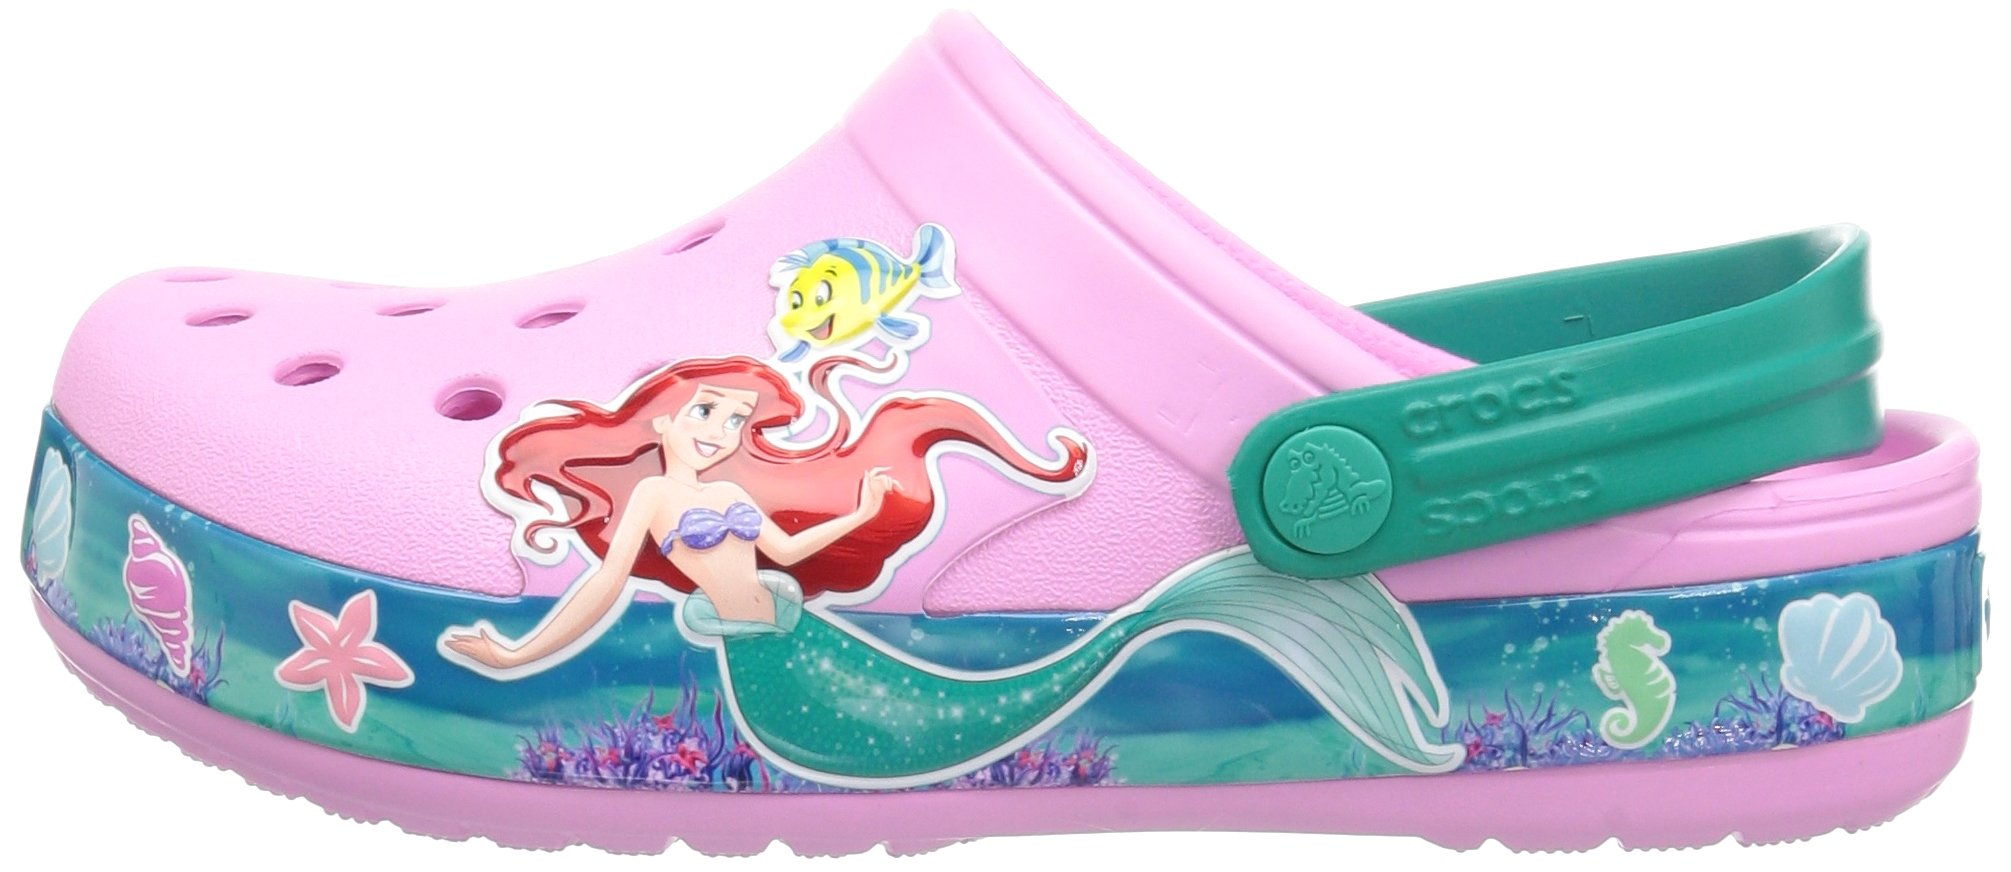 Crocs Unisex-Kids  CB Princess Ariel Clog K , carnation , C10 M US Toddler by Crocs (Image #5)